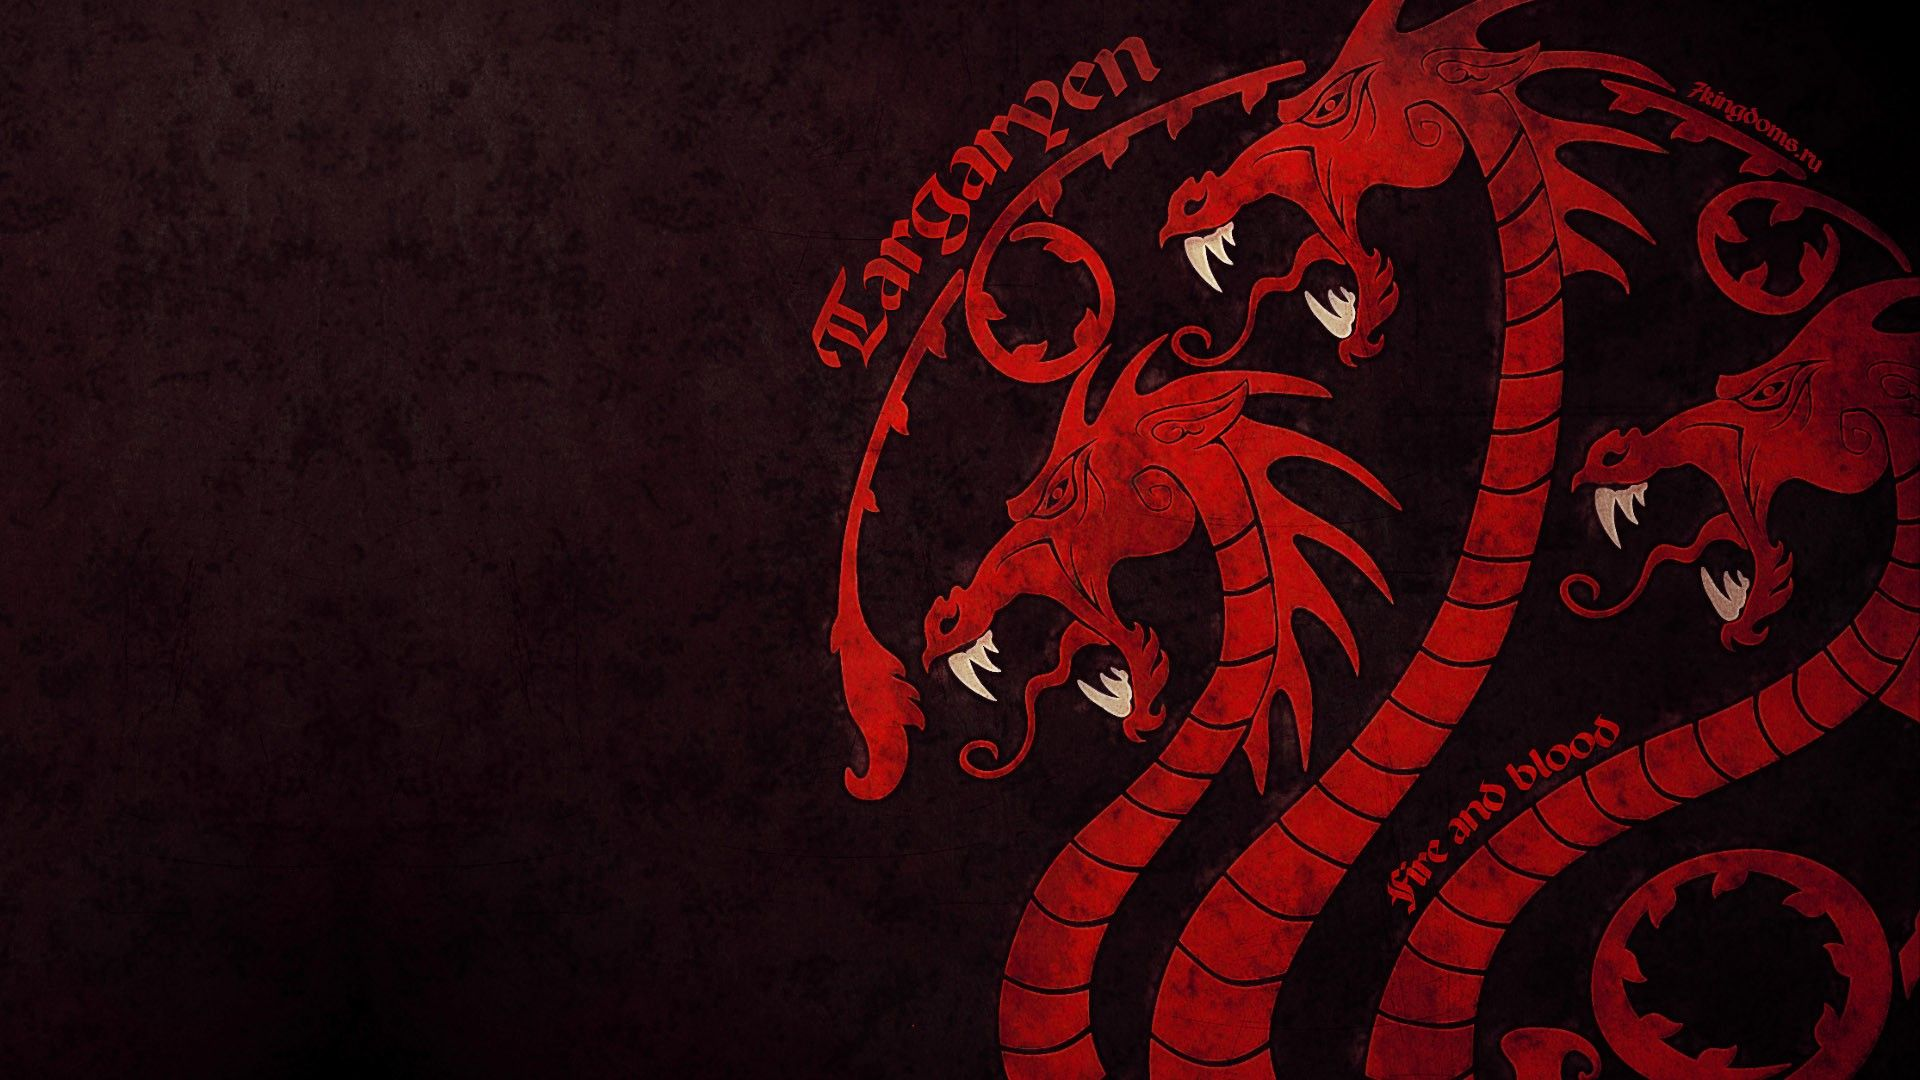 1920x1080 Movies Game of Thrones wallpapers (Desktop, Phone, Tablet) - Awesome ...